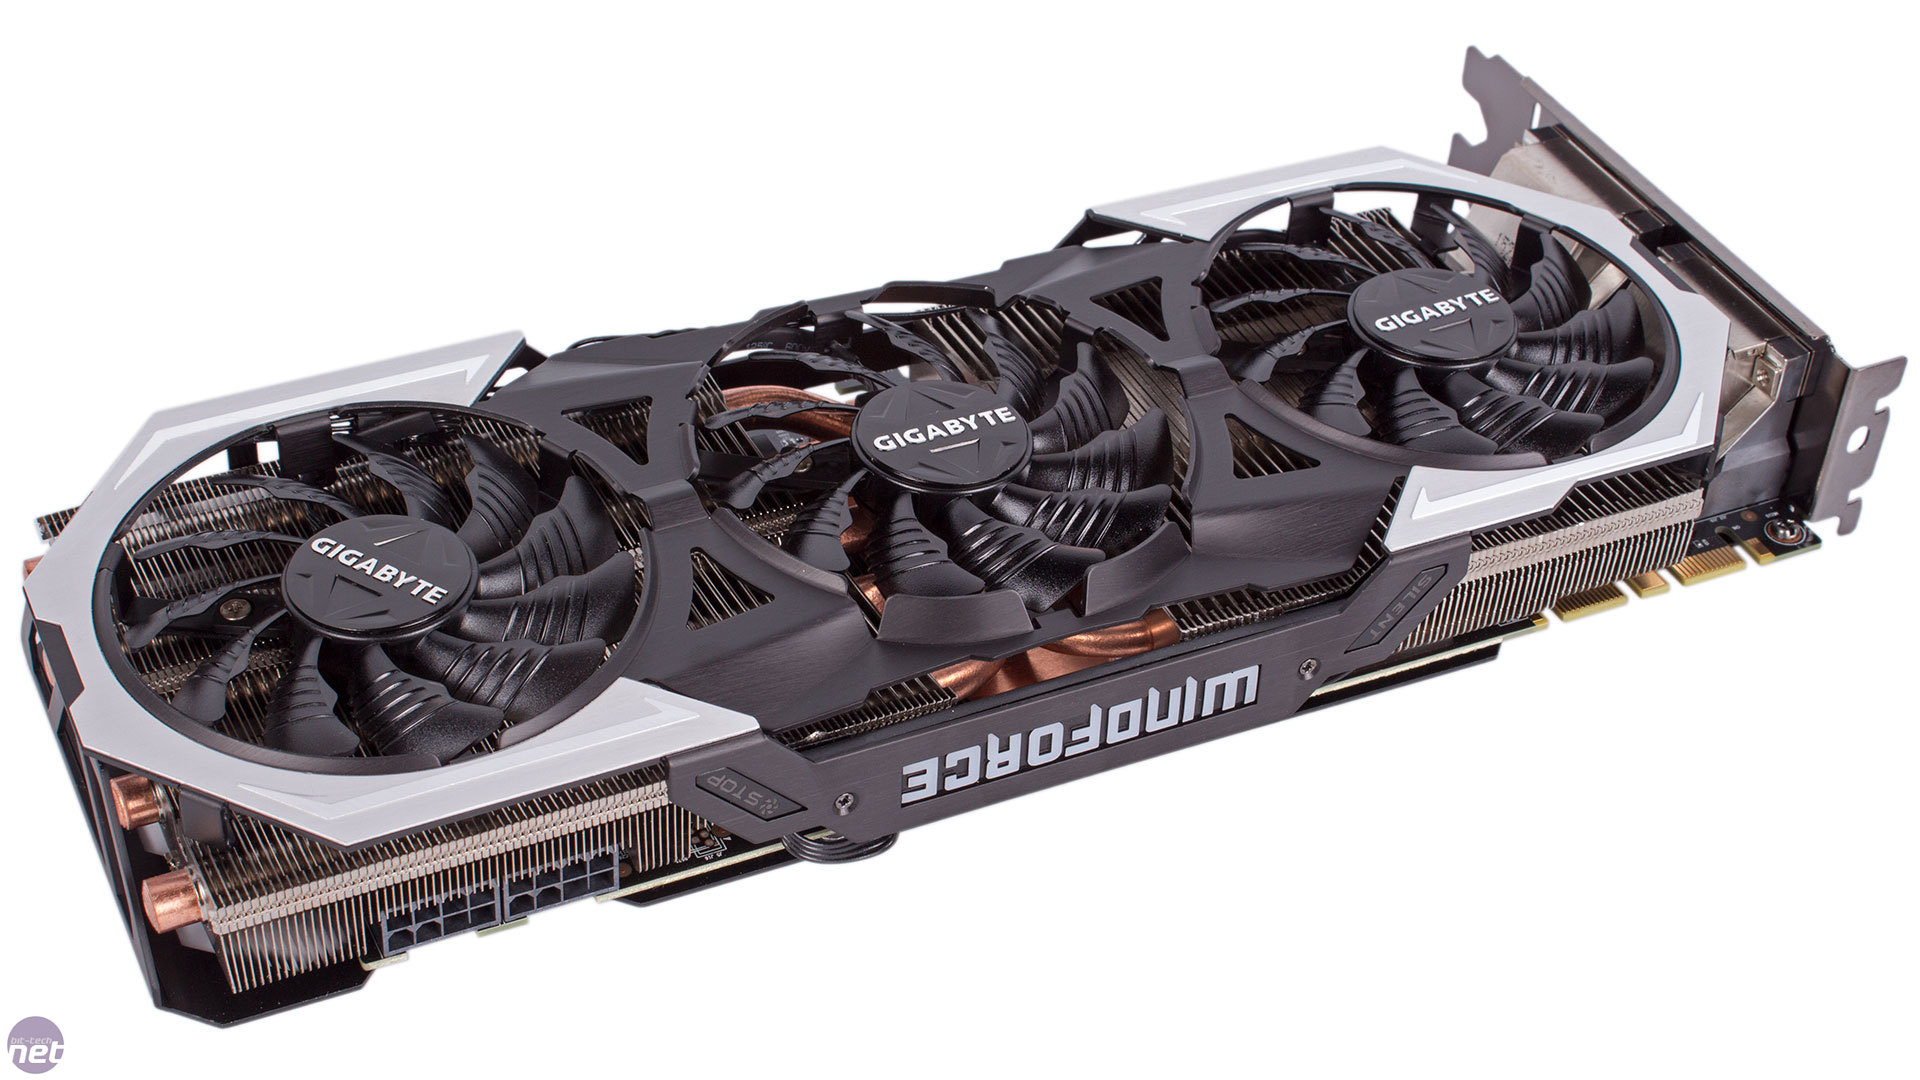 gigabyte geforce gtx 980 ti g1 gaming windforce